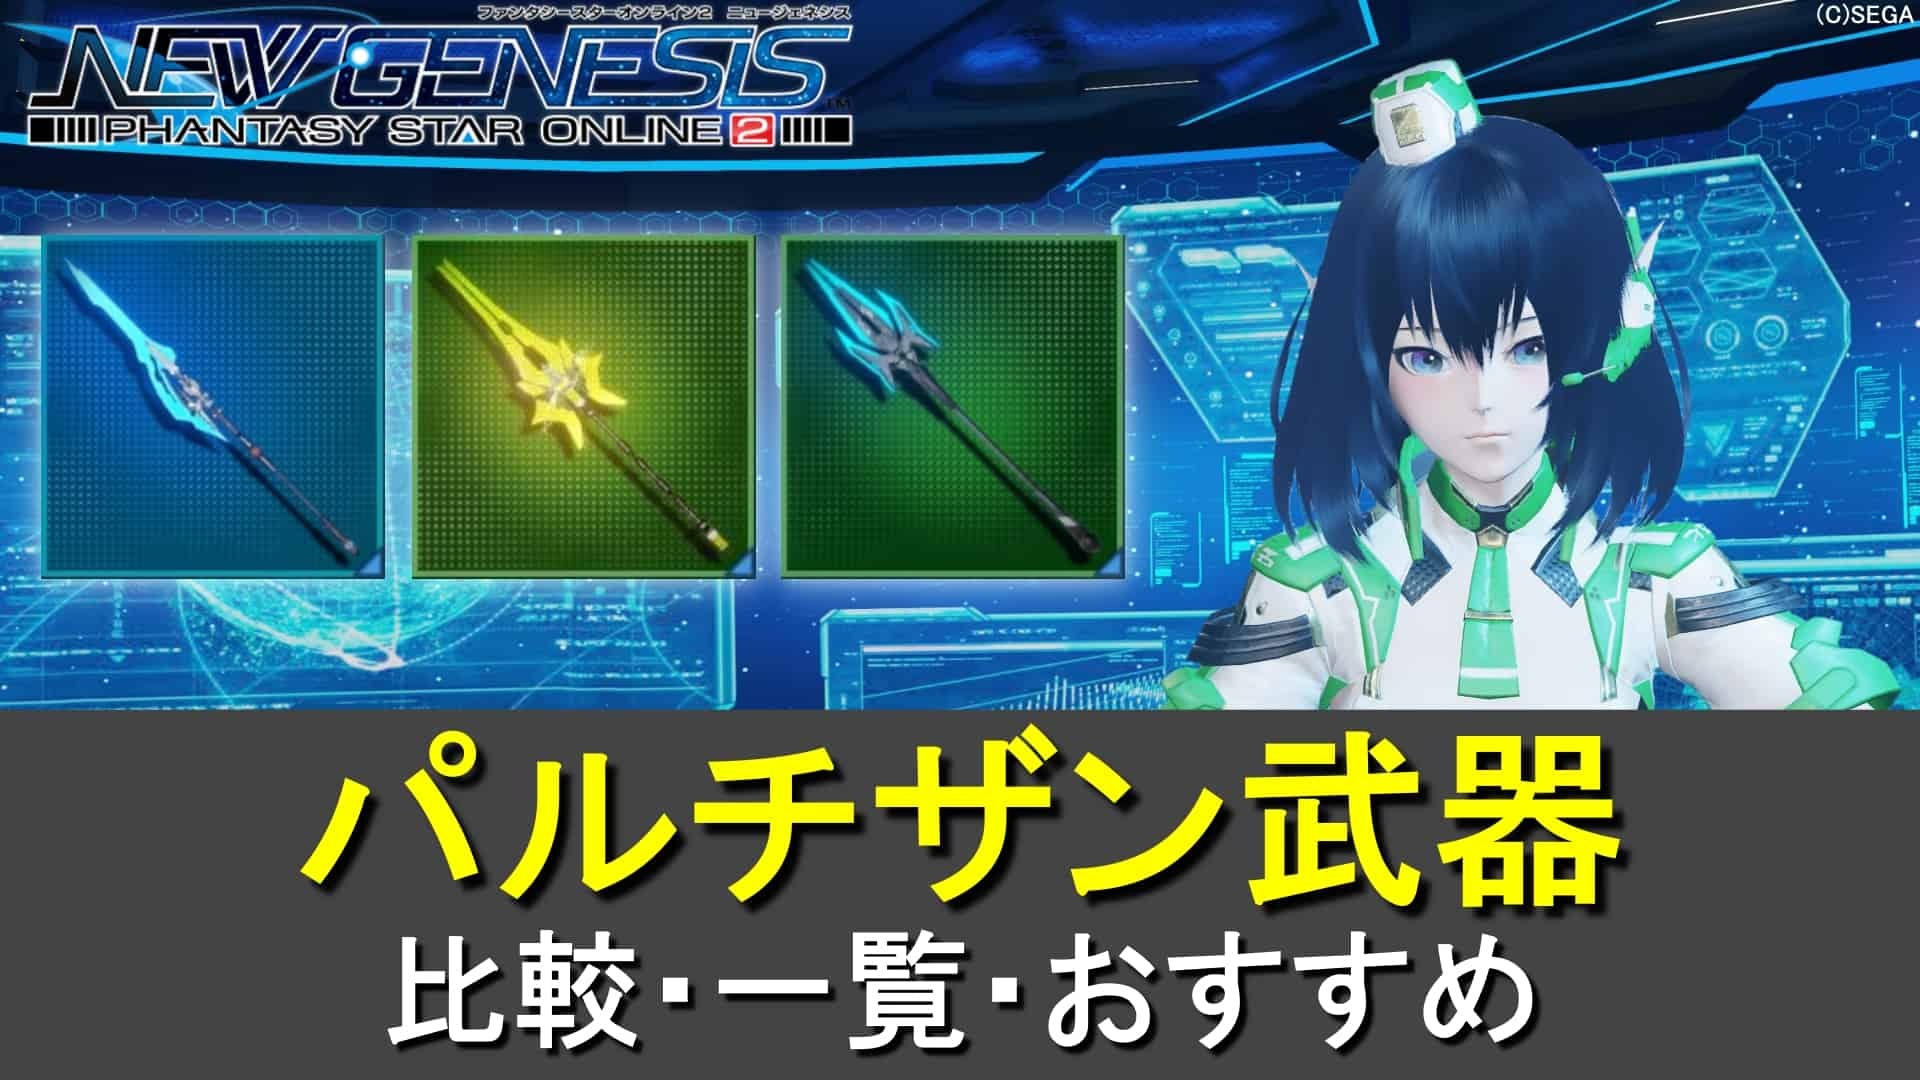 【PSO2NGS】パルチザン武器の一覧、潜在まとめ